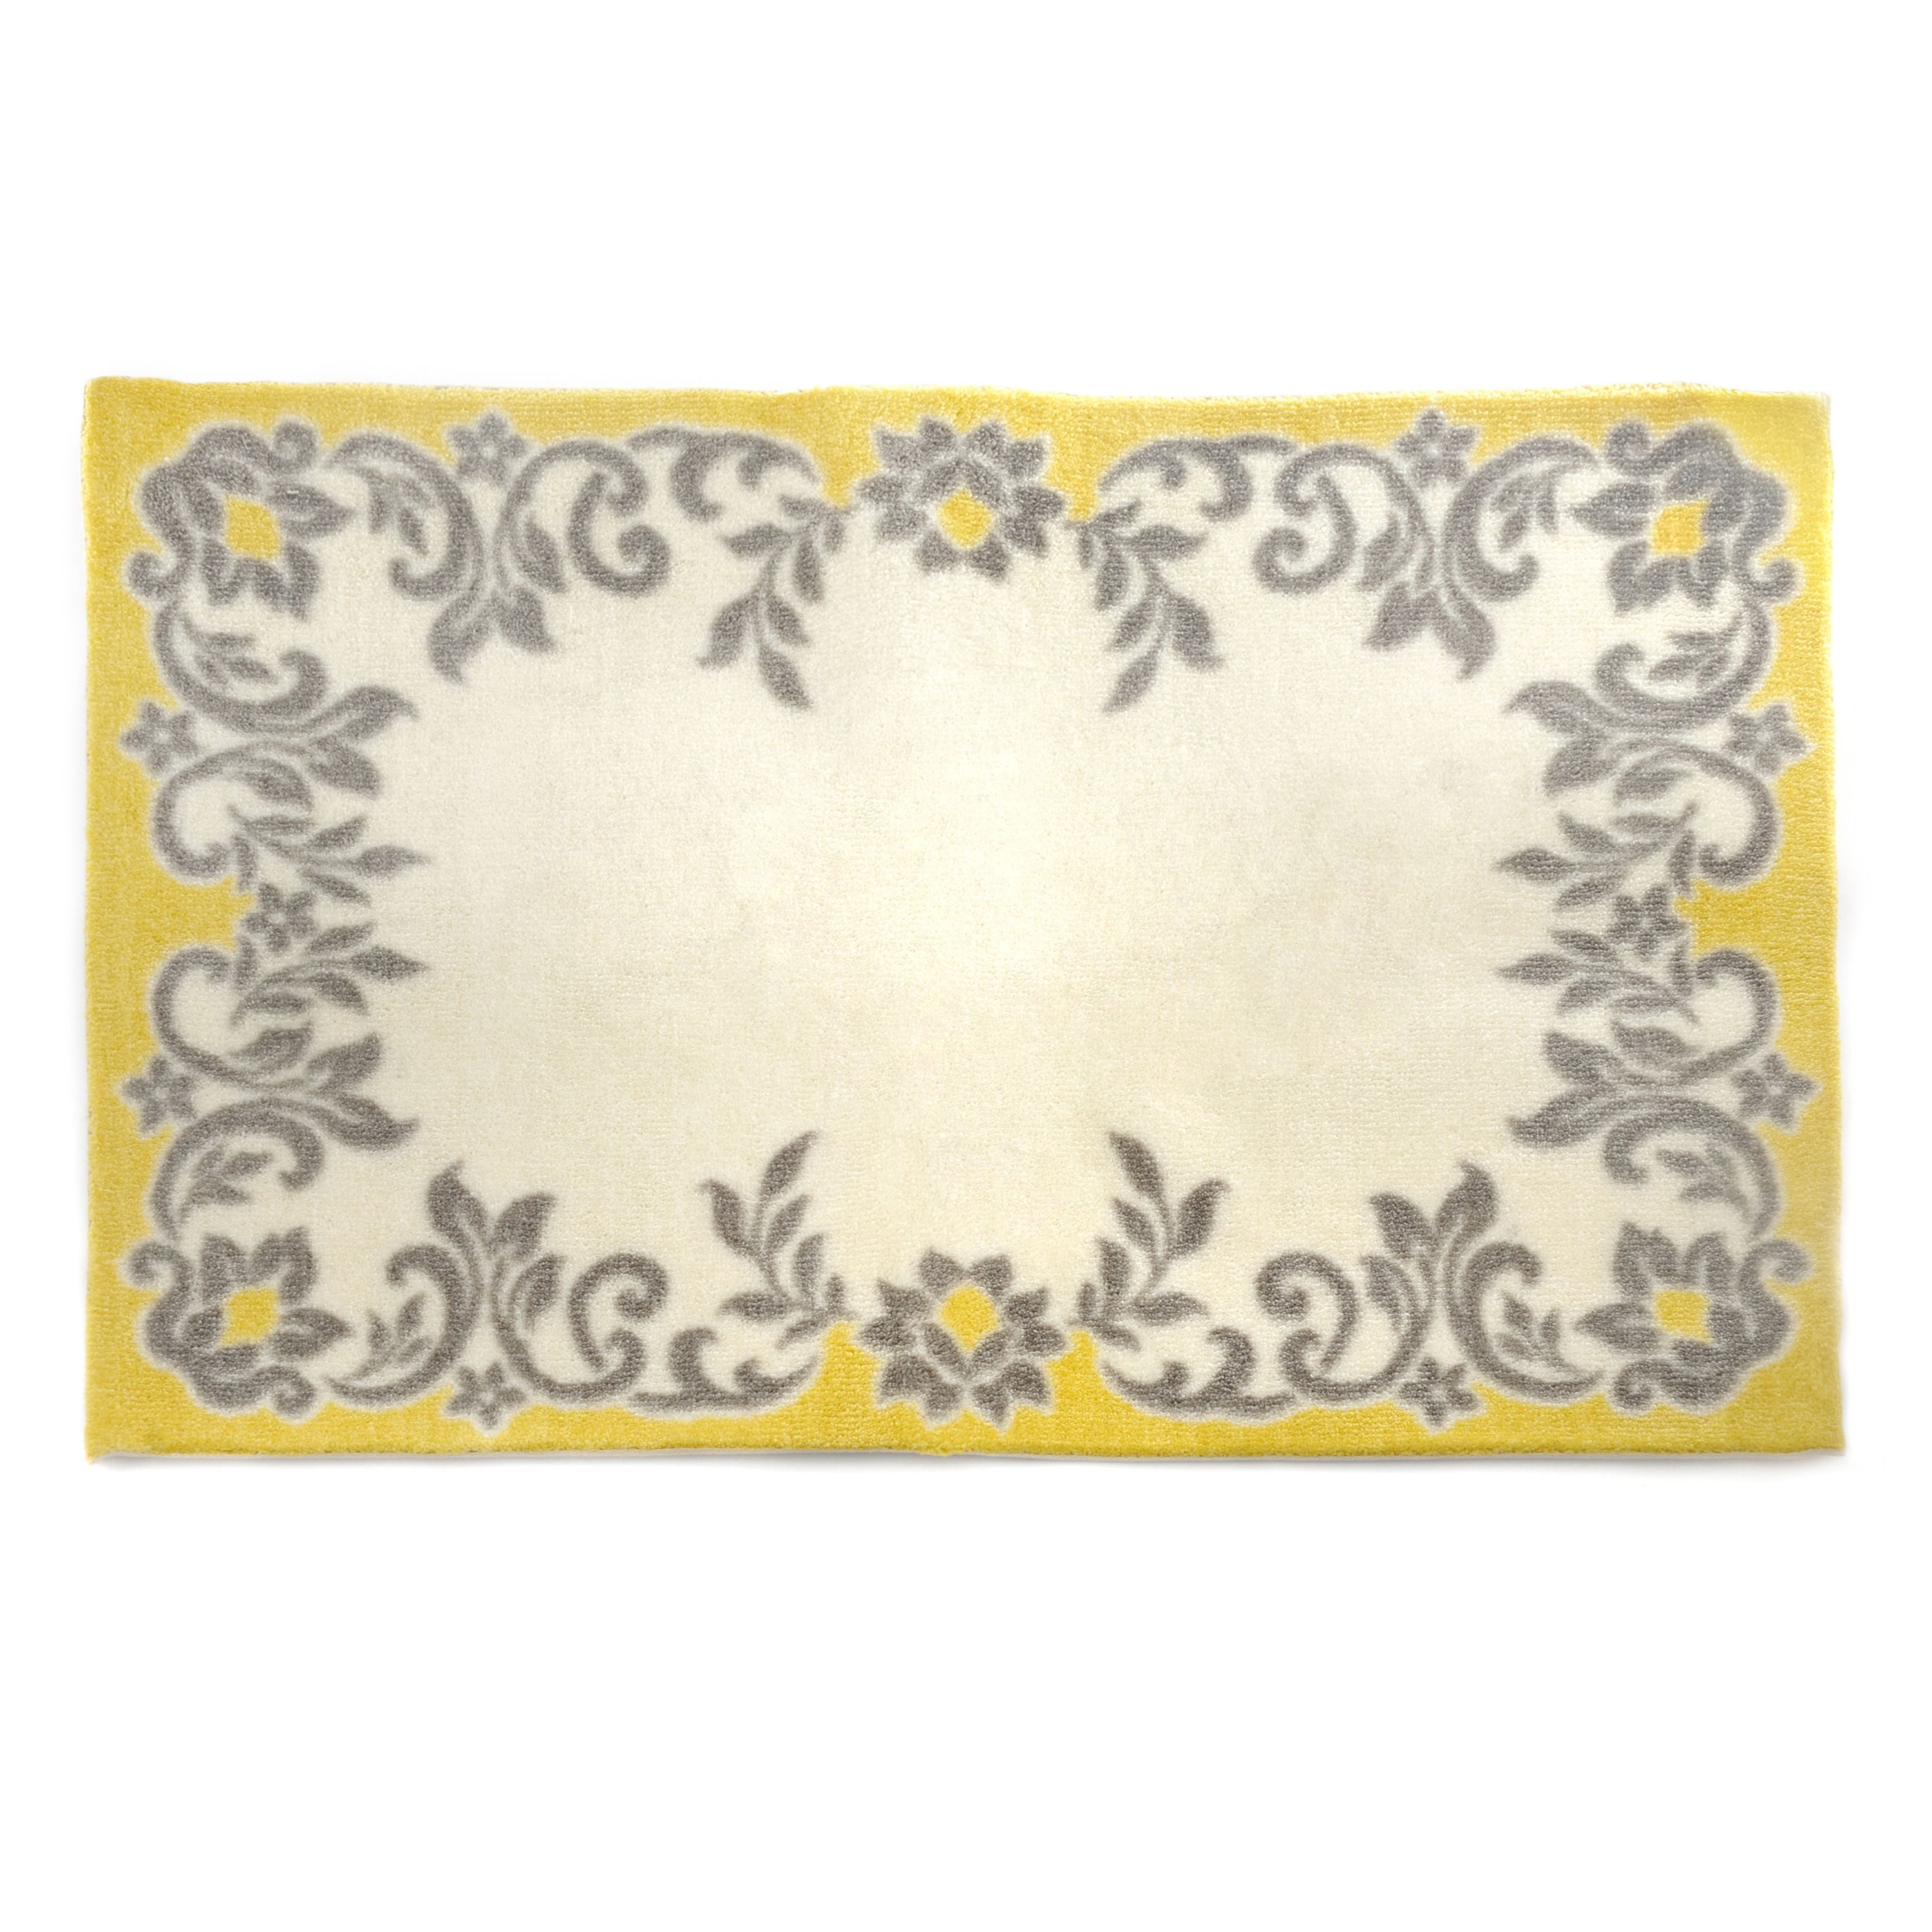 Enhance Your Bathroom Decor With The Charming Bedazzled Bath Mat - Yellow and grey bath mat for bathroom decorating ideas